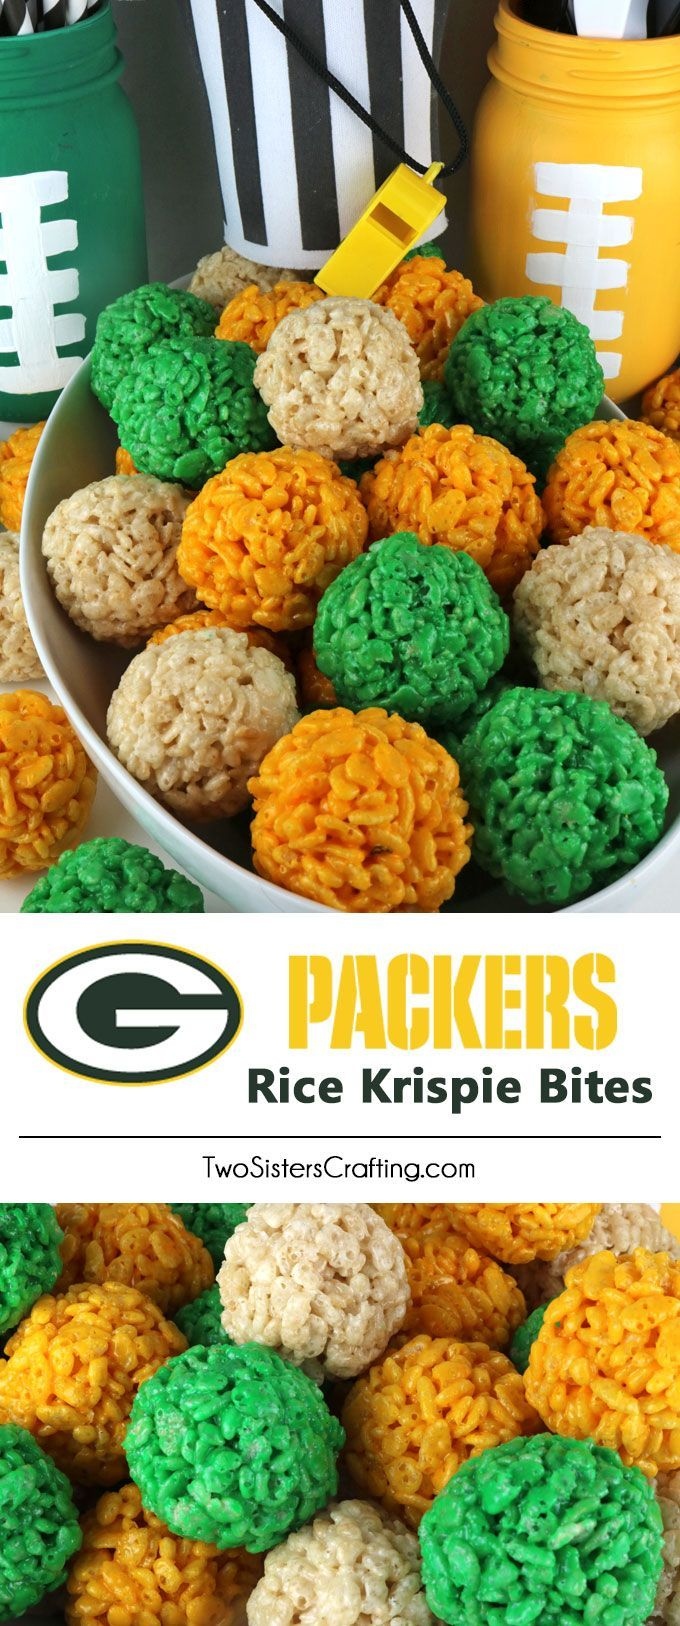 Green Bay Packers Rice Krispie Bites -  Yummy, bite-sized balls of crunchy, marshmallow-y delight.  This is a Football dessert that is easy to make and even better to eat.  These colorful and festive Green Bay Packers Treats are great for a game day football party, an NFL playoff party, a Super Bowl party or as a special snack for the Green Bay Packers fans in your life. Go Packers!  Follow us for more fun Superbowl Food Ideas.